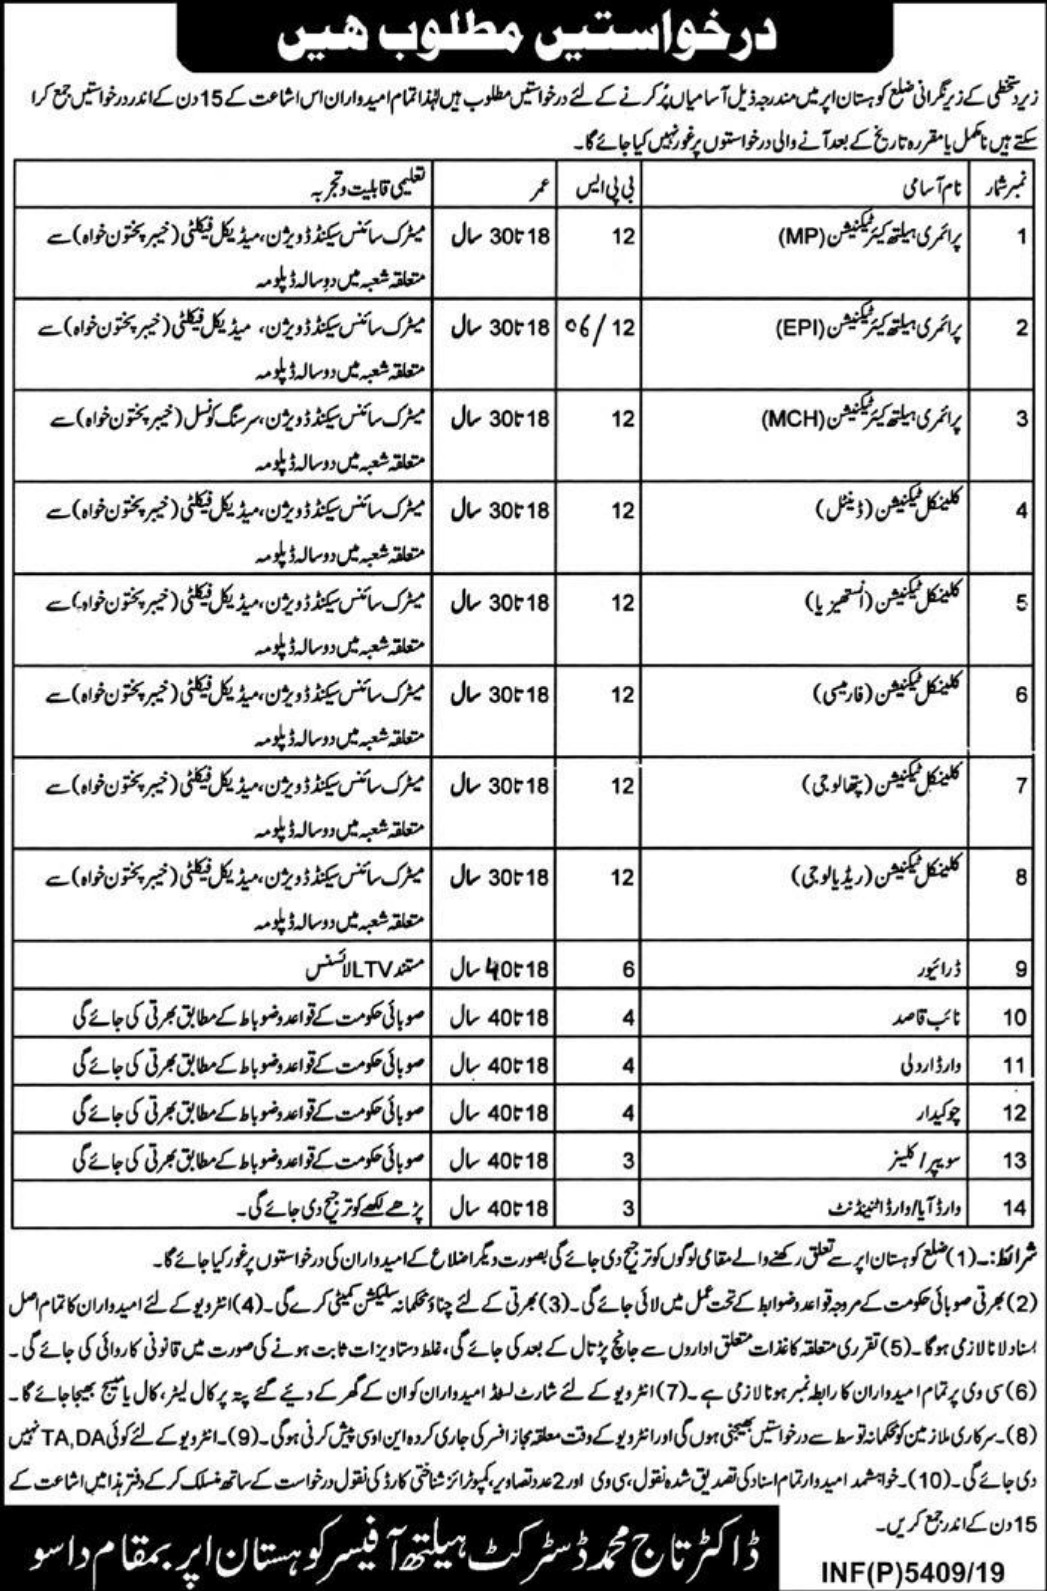 District Health Authority Kohistan Dasu Jobs 2020 KPK